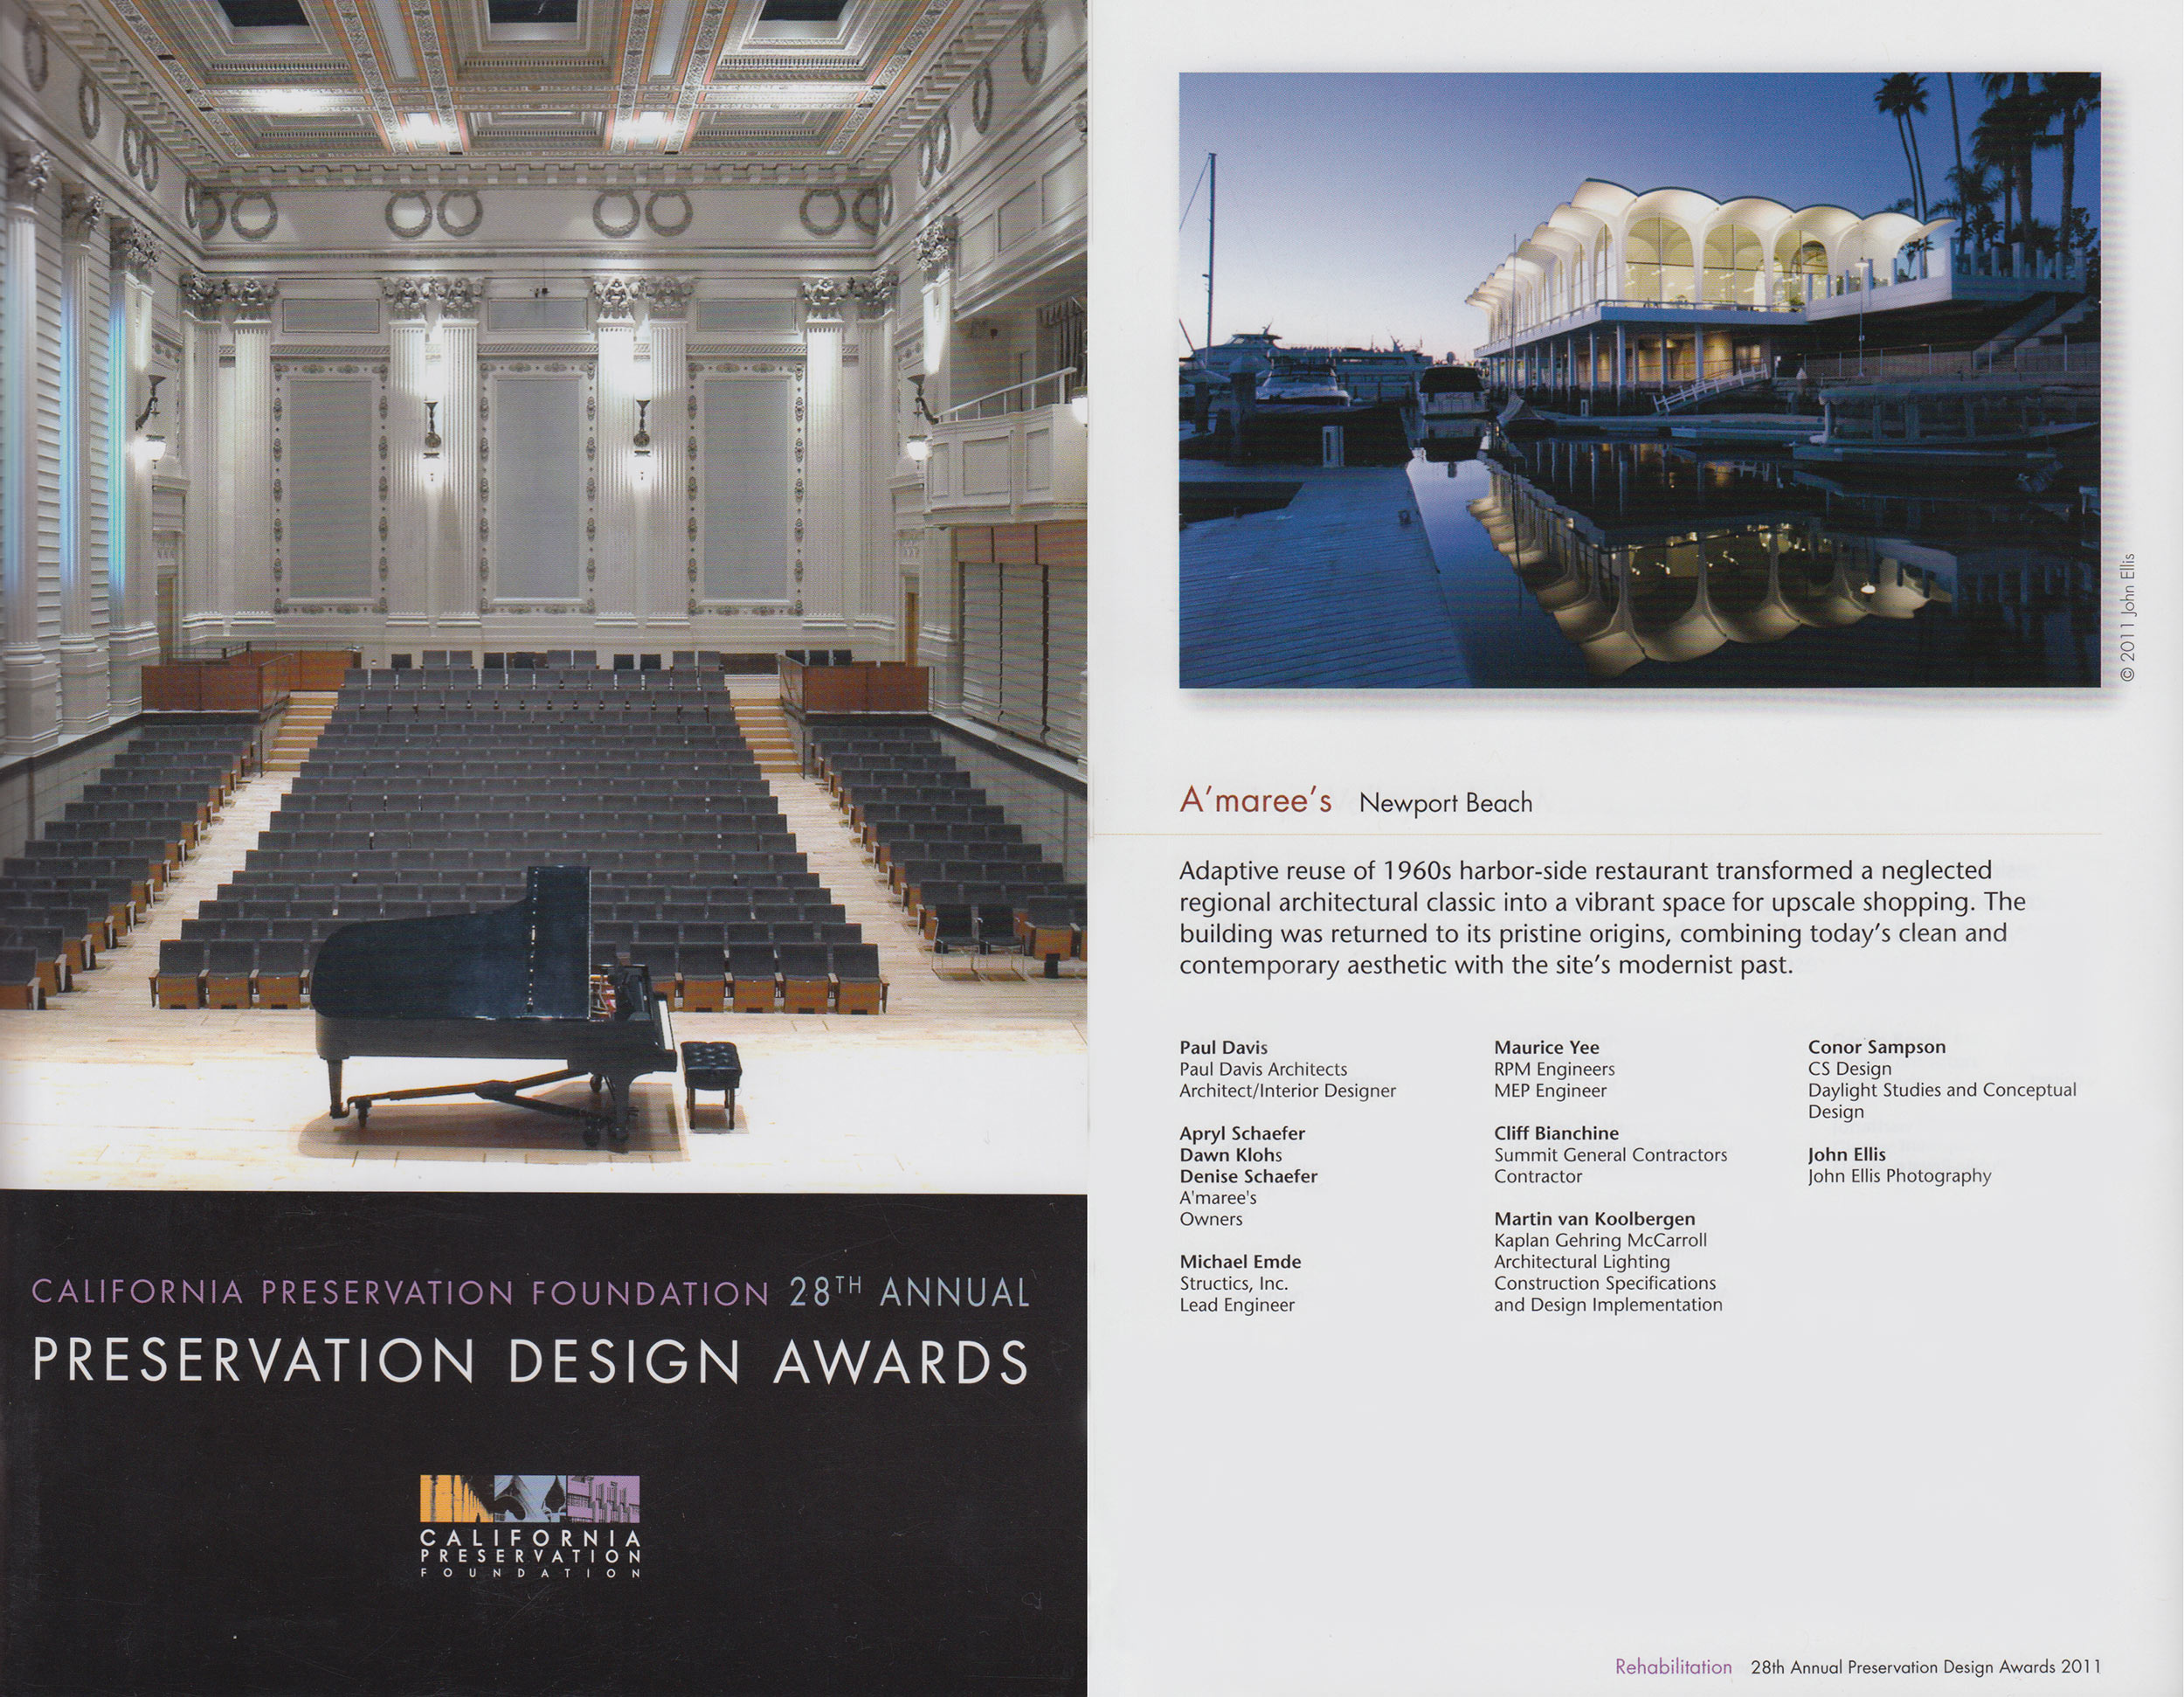 2011 Preservation Design Award for Historic Preservation